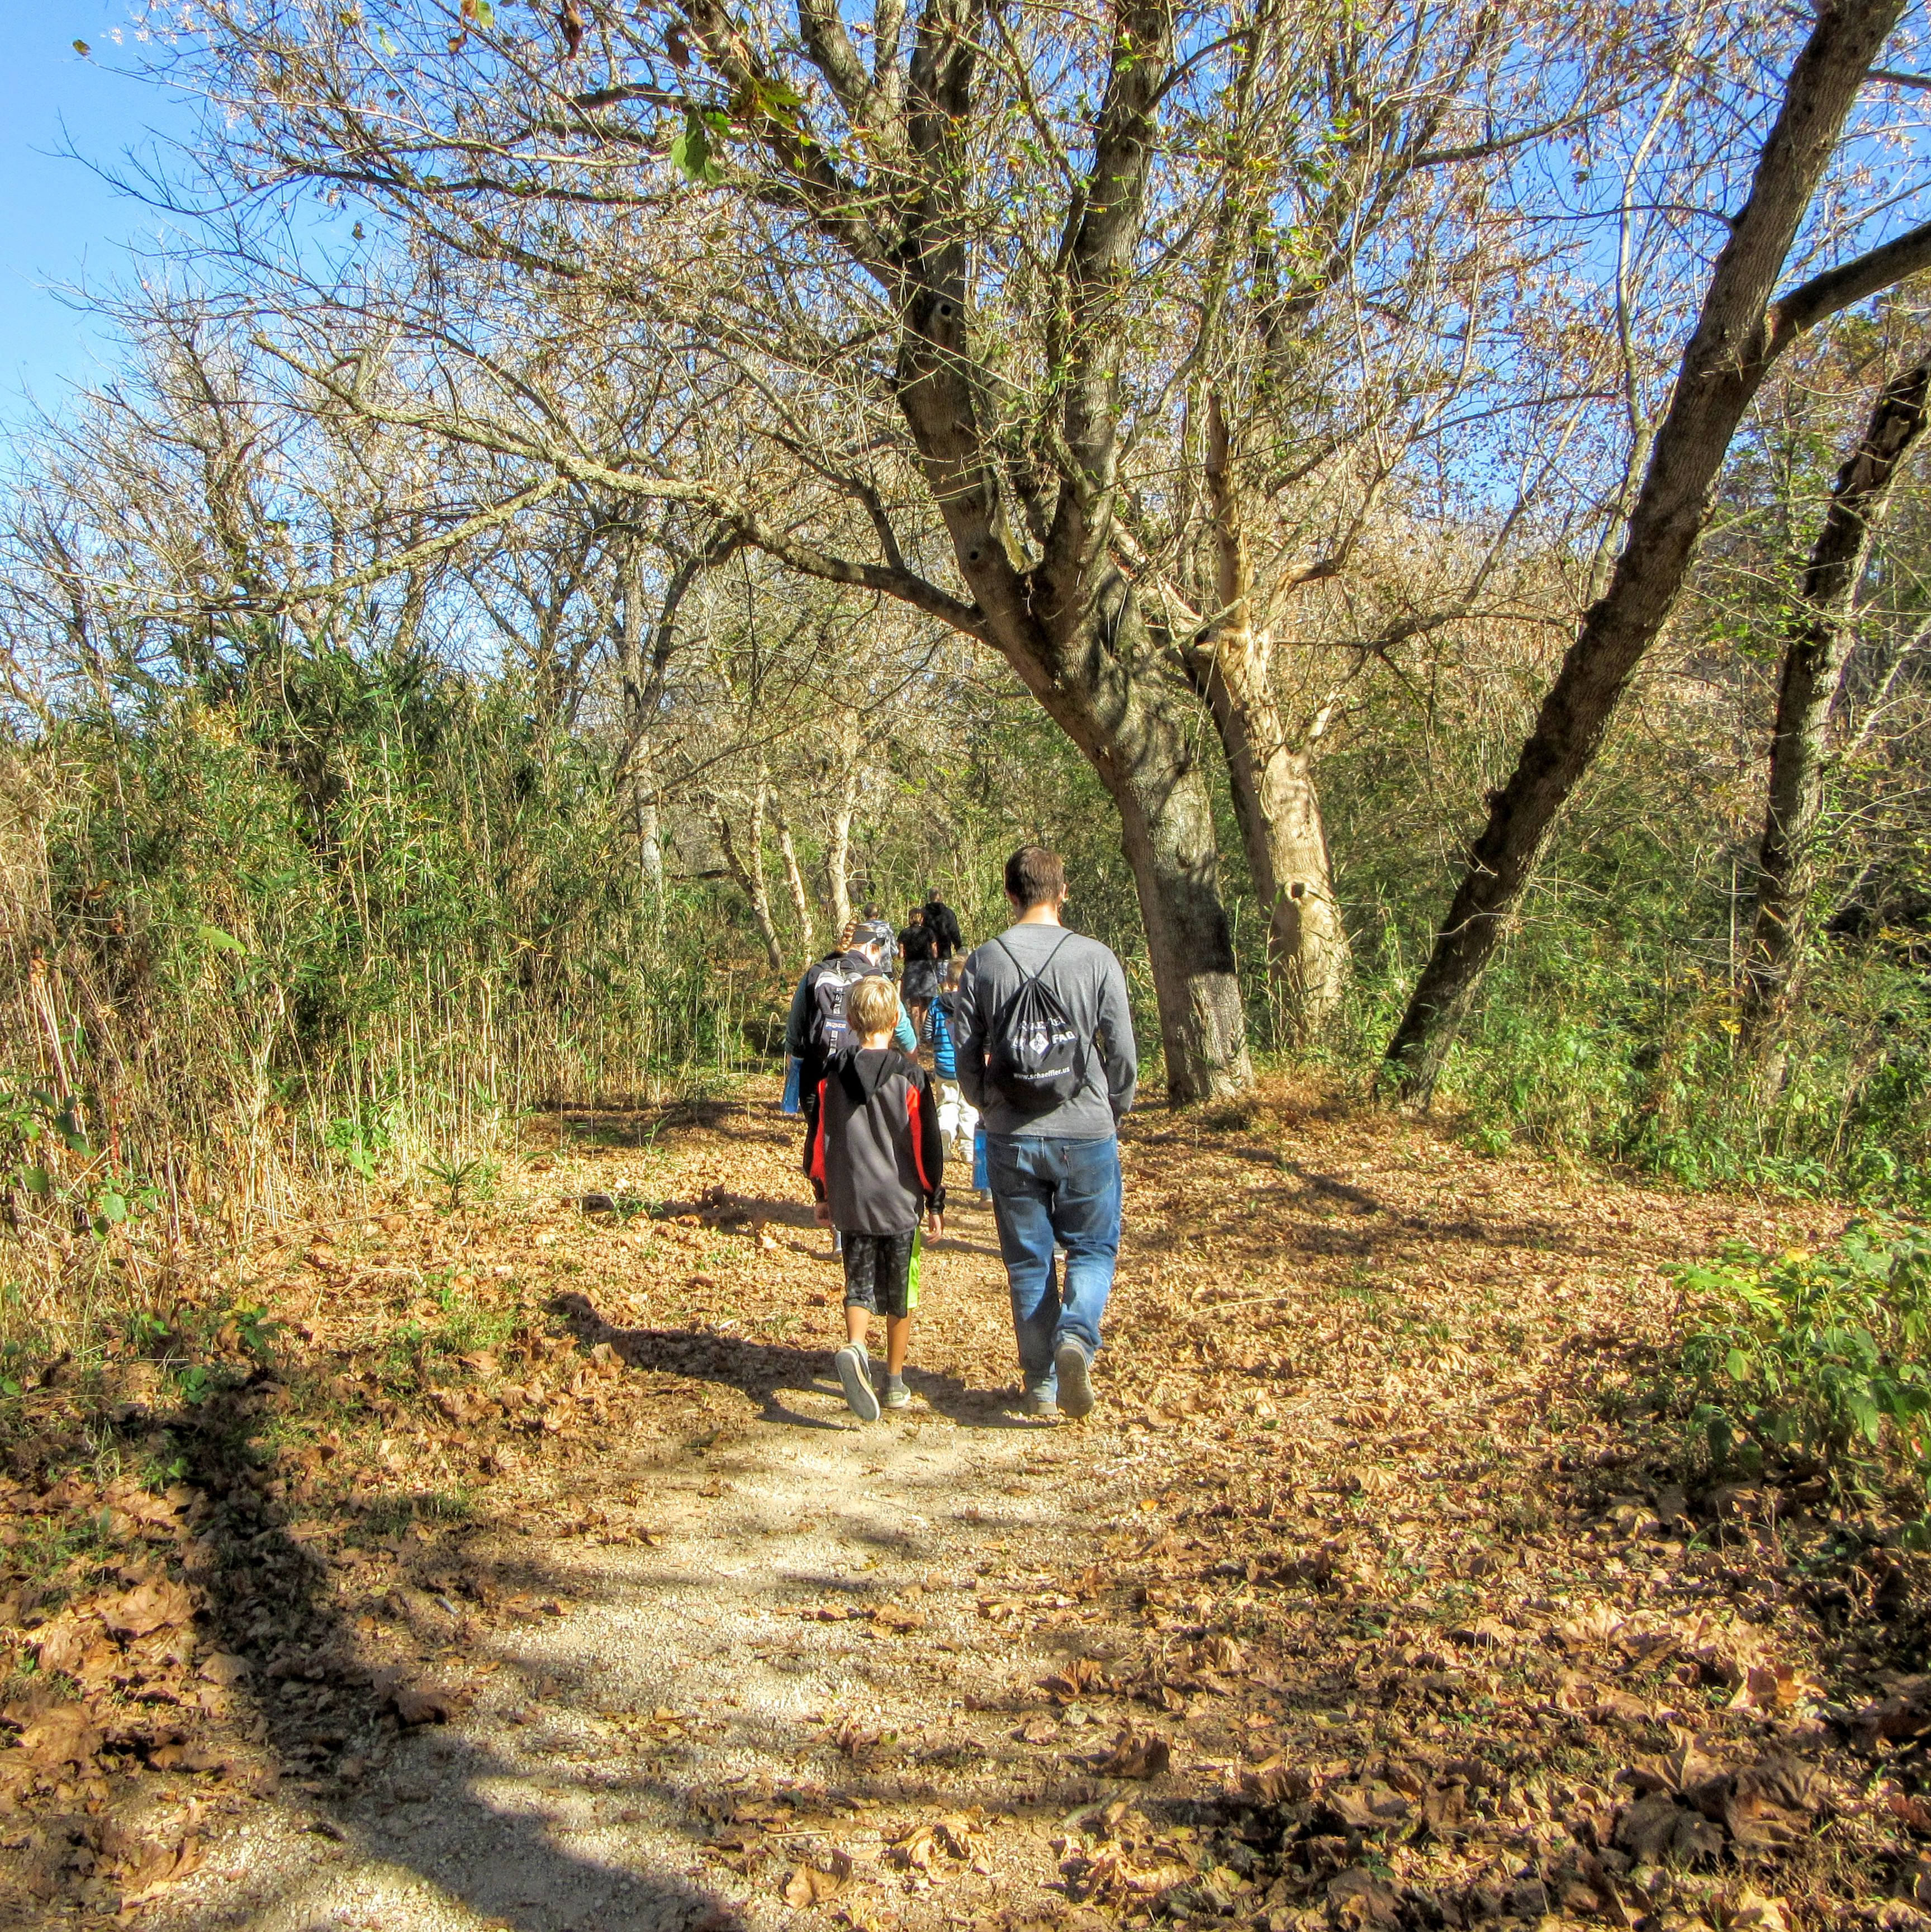 Hiking in a group. | Hiking in Shelby, North Carolina: the First Broad River Trail.